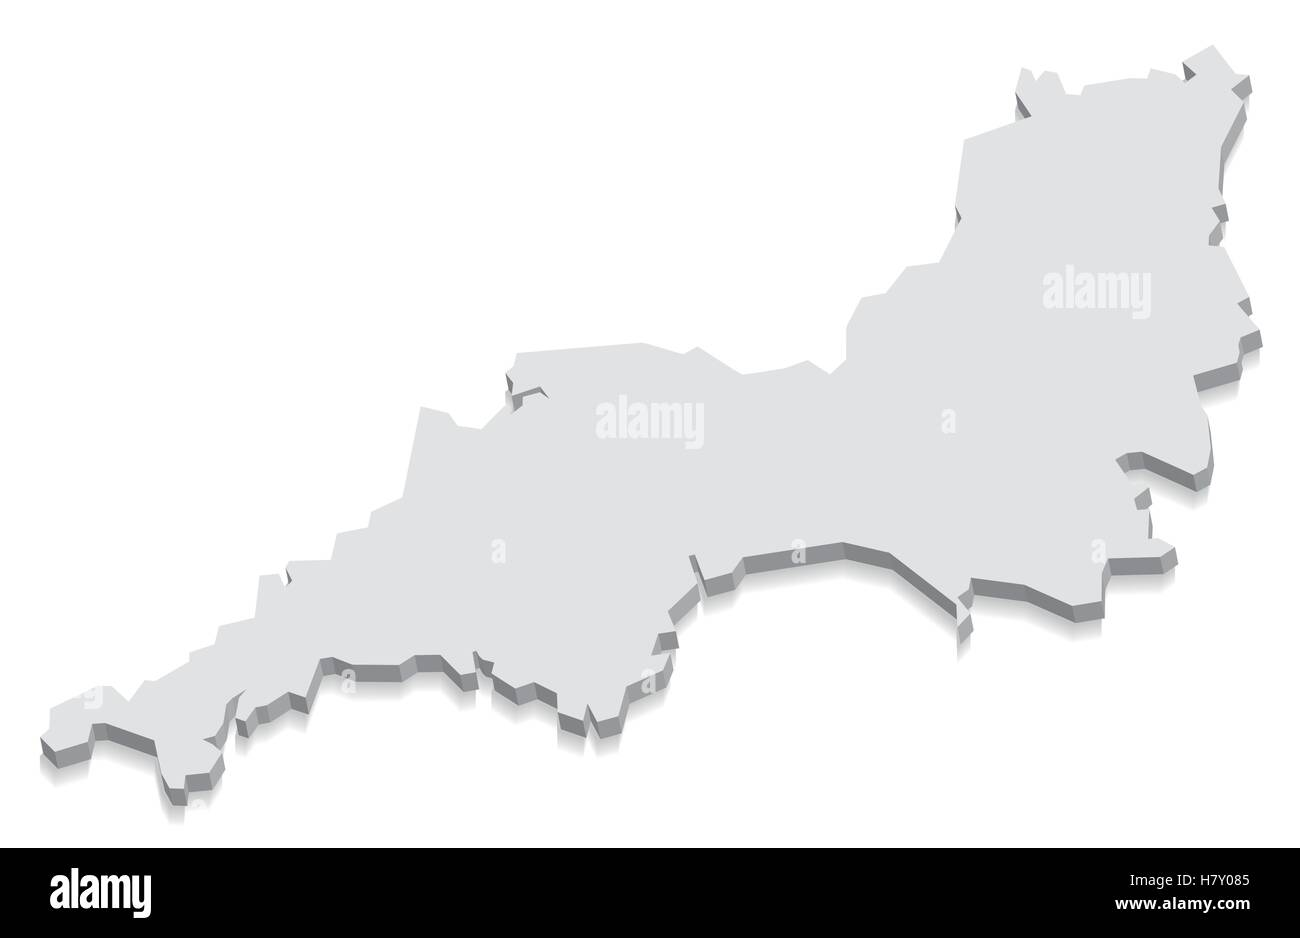 3d Map Of England.South West England Map Grey 3d Stock Vector Art Illustration